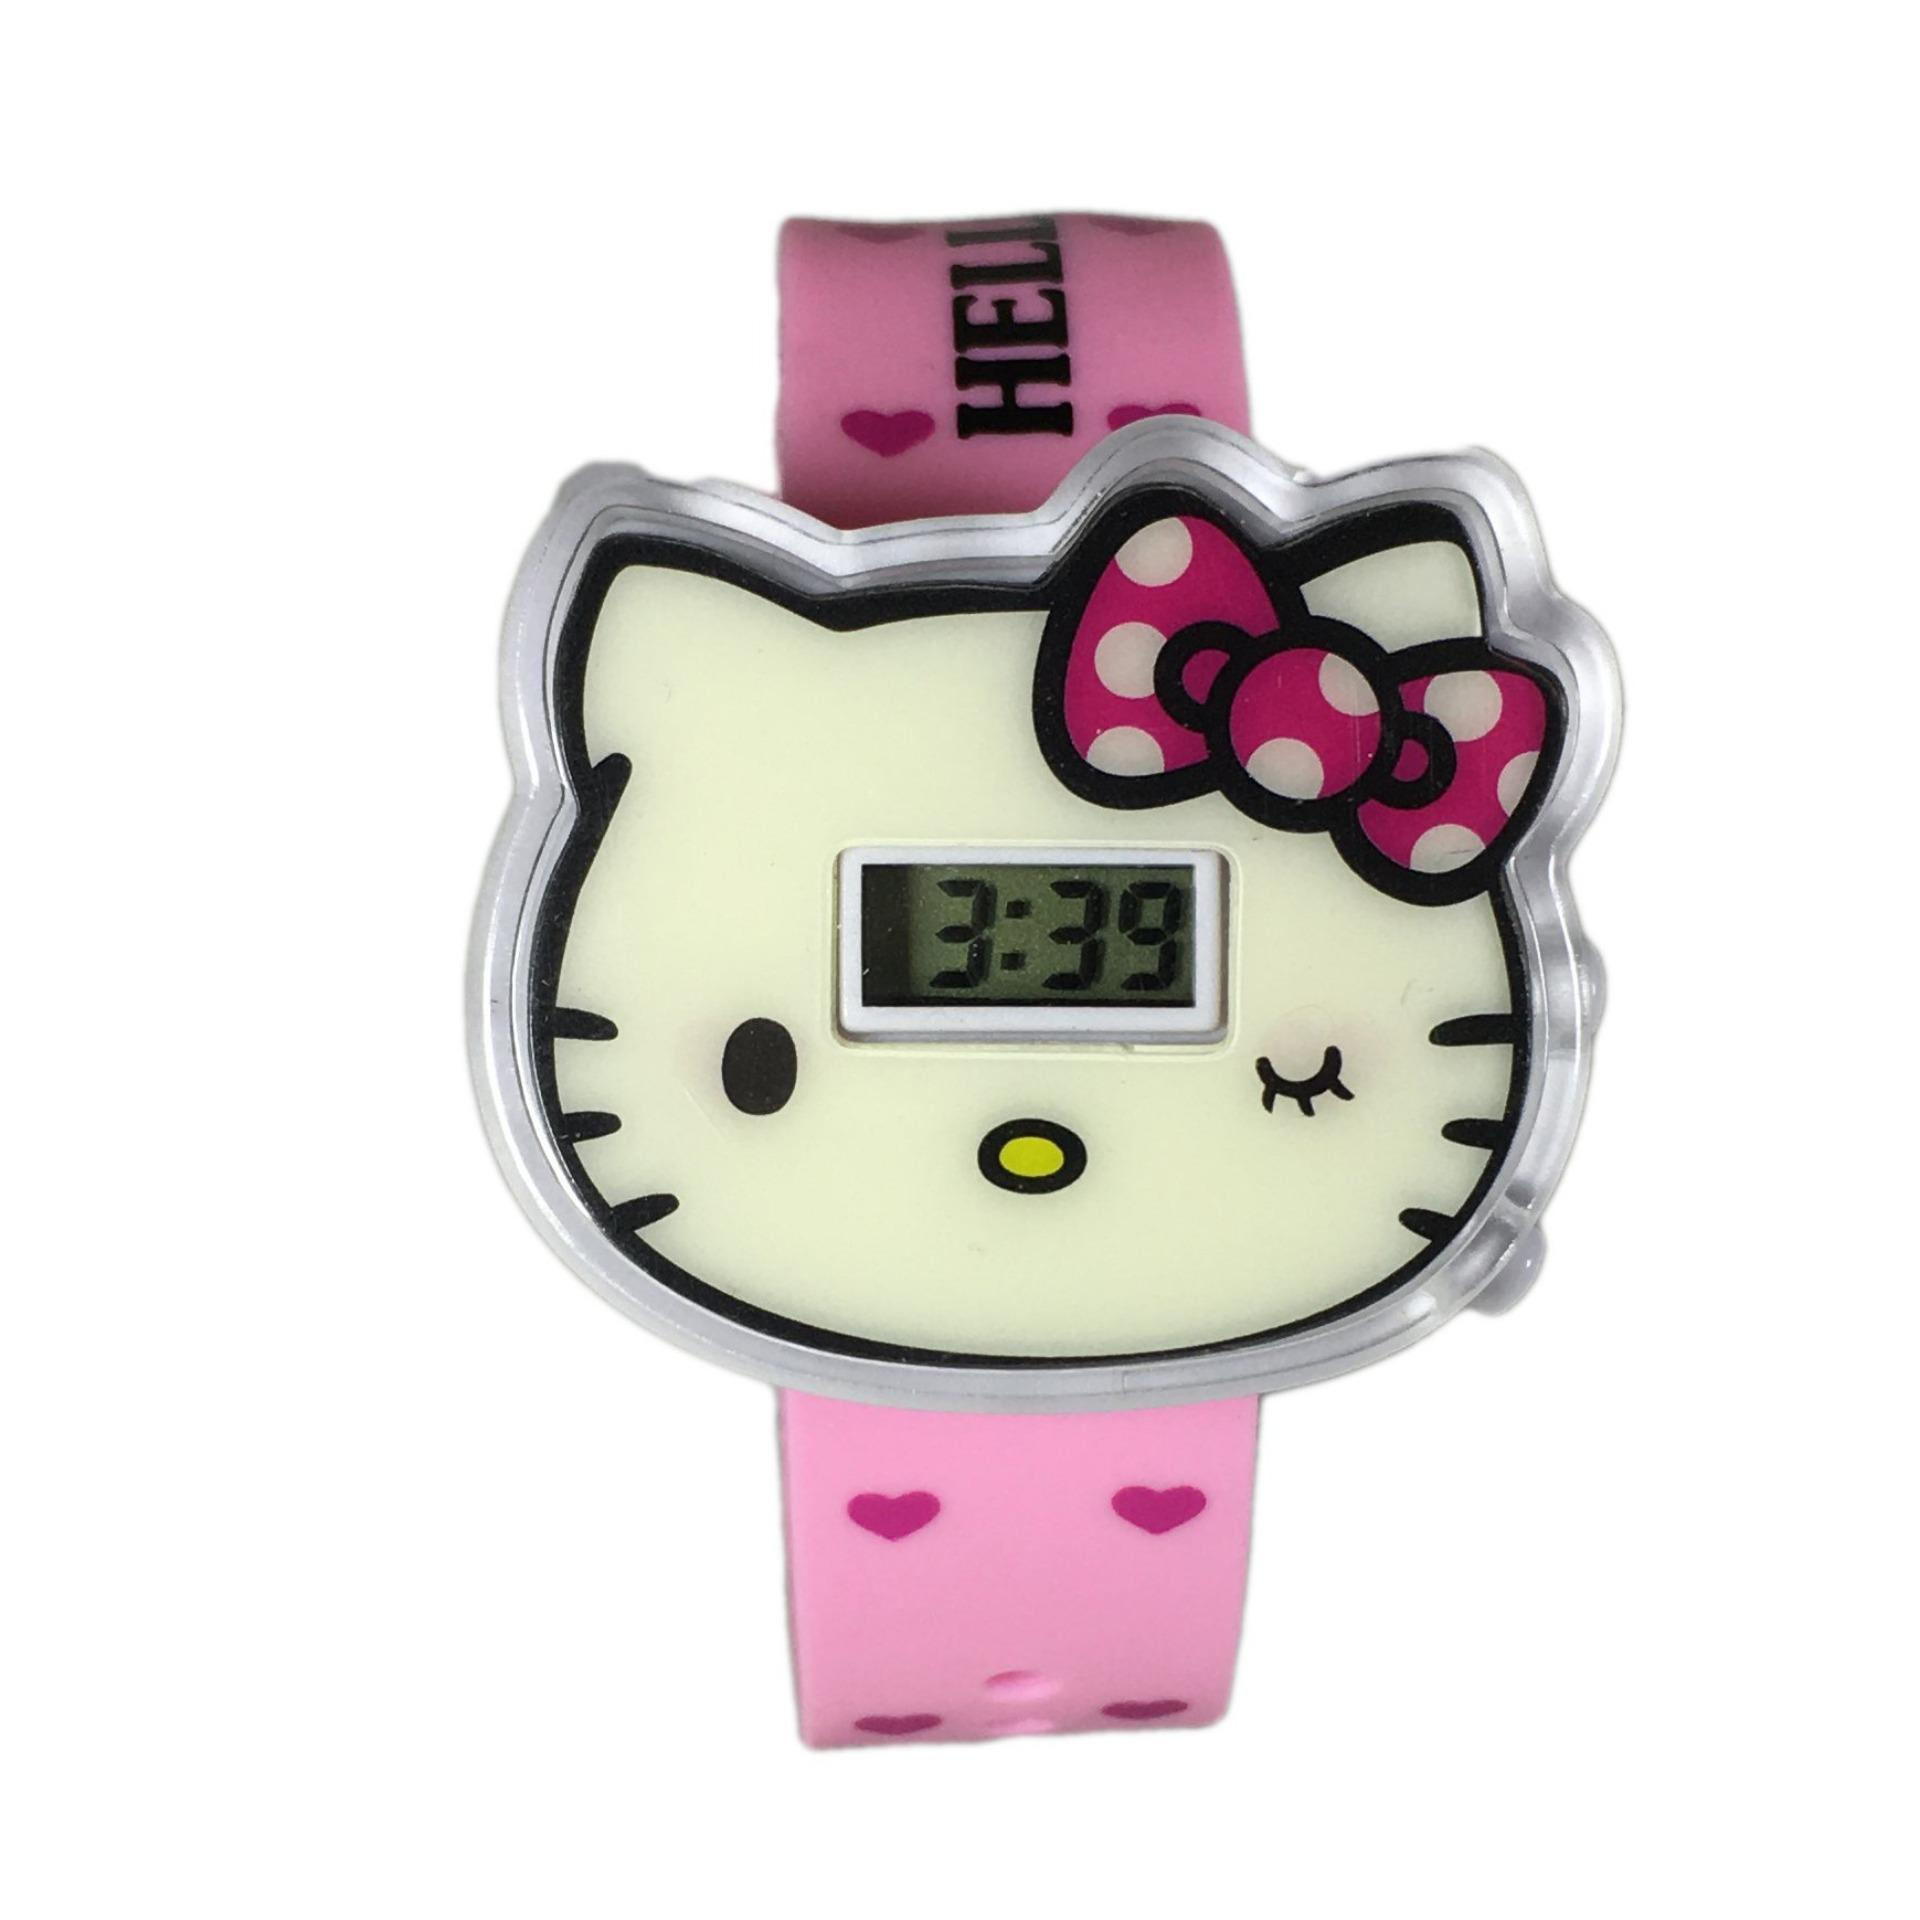 DnB COLLECTION Jam Tangan Digital Cover Hello Kitty - Light Pink